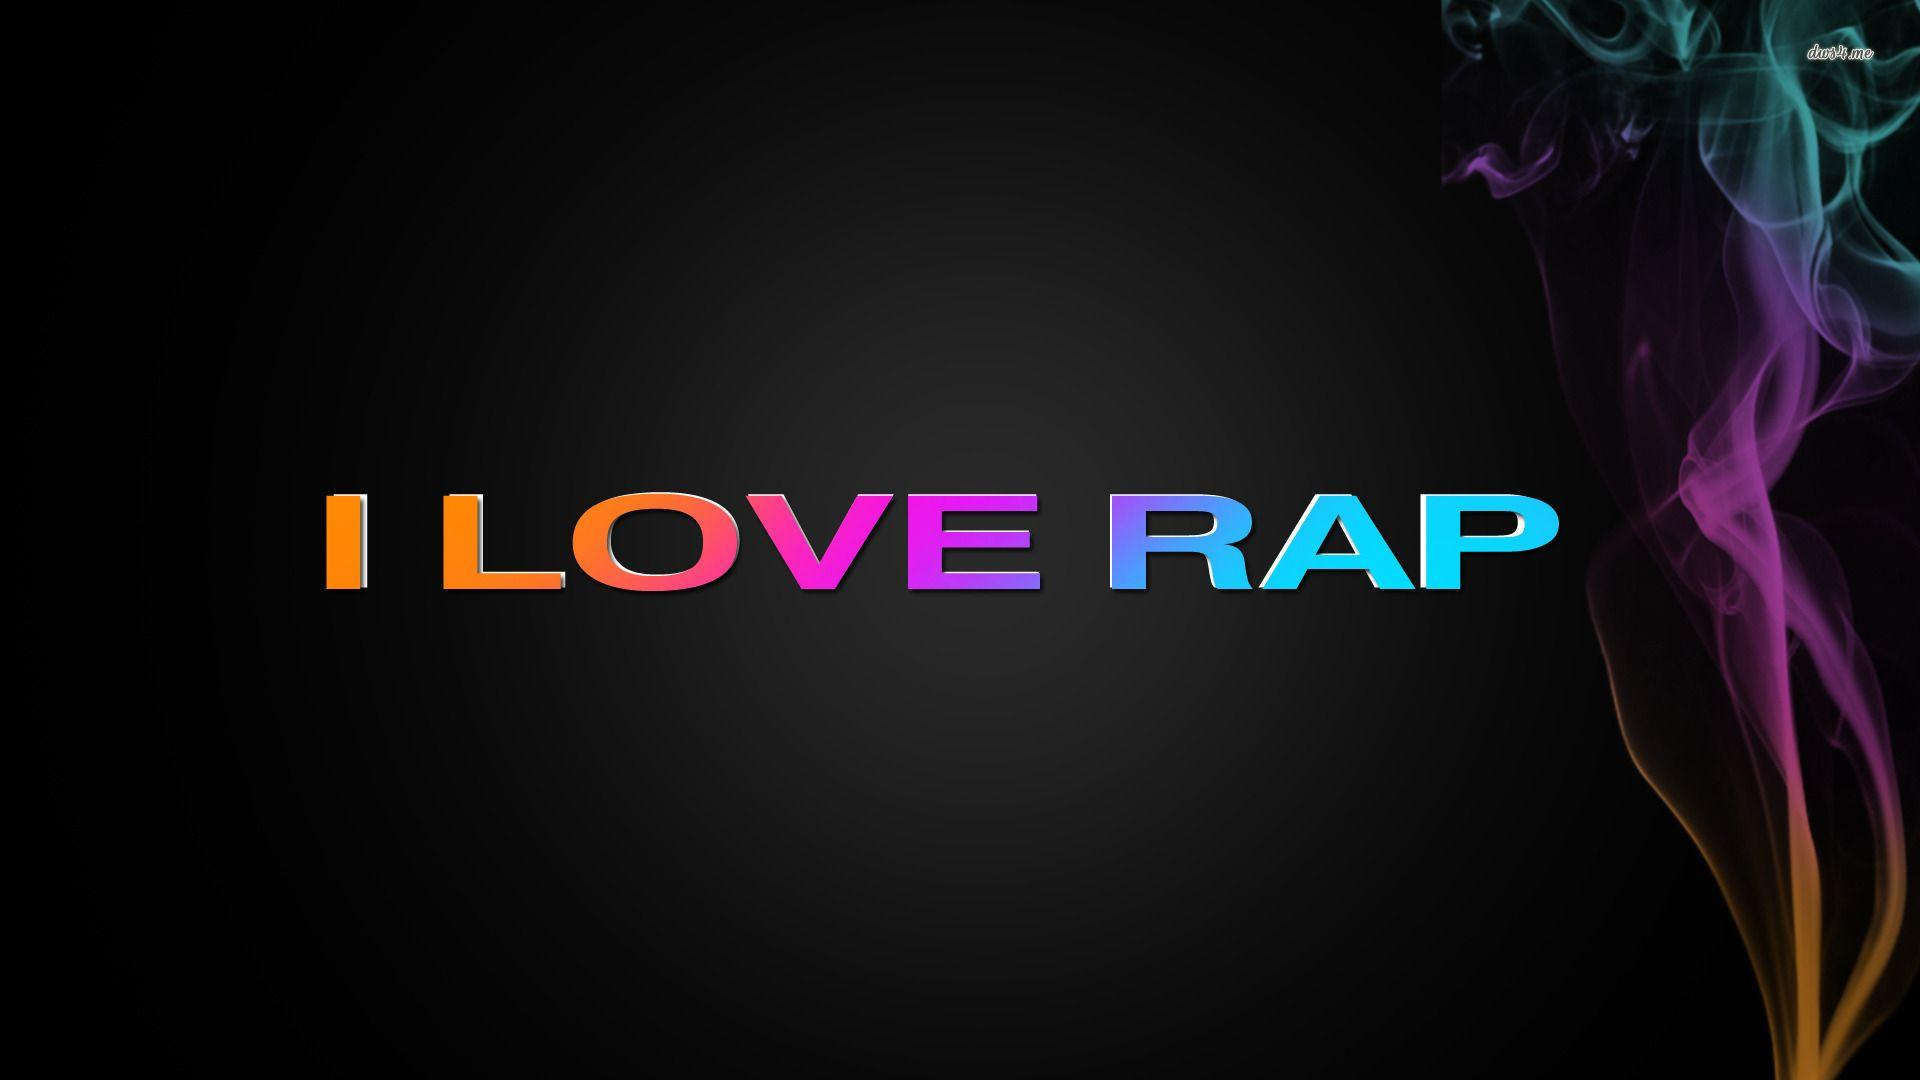 Cool rap music wallpaper